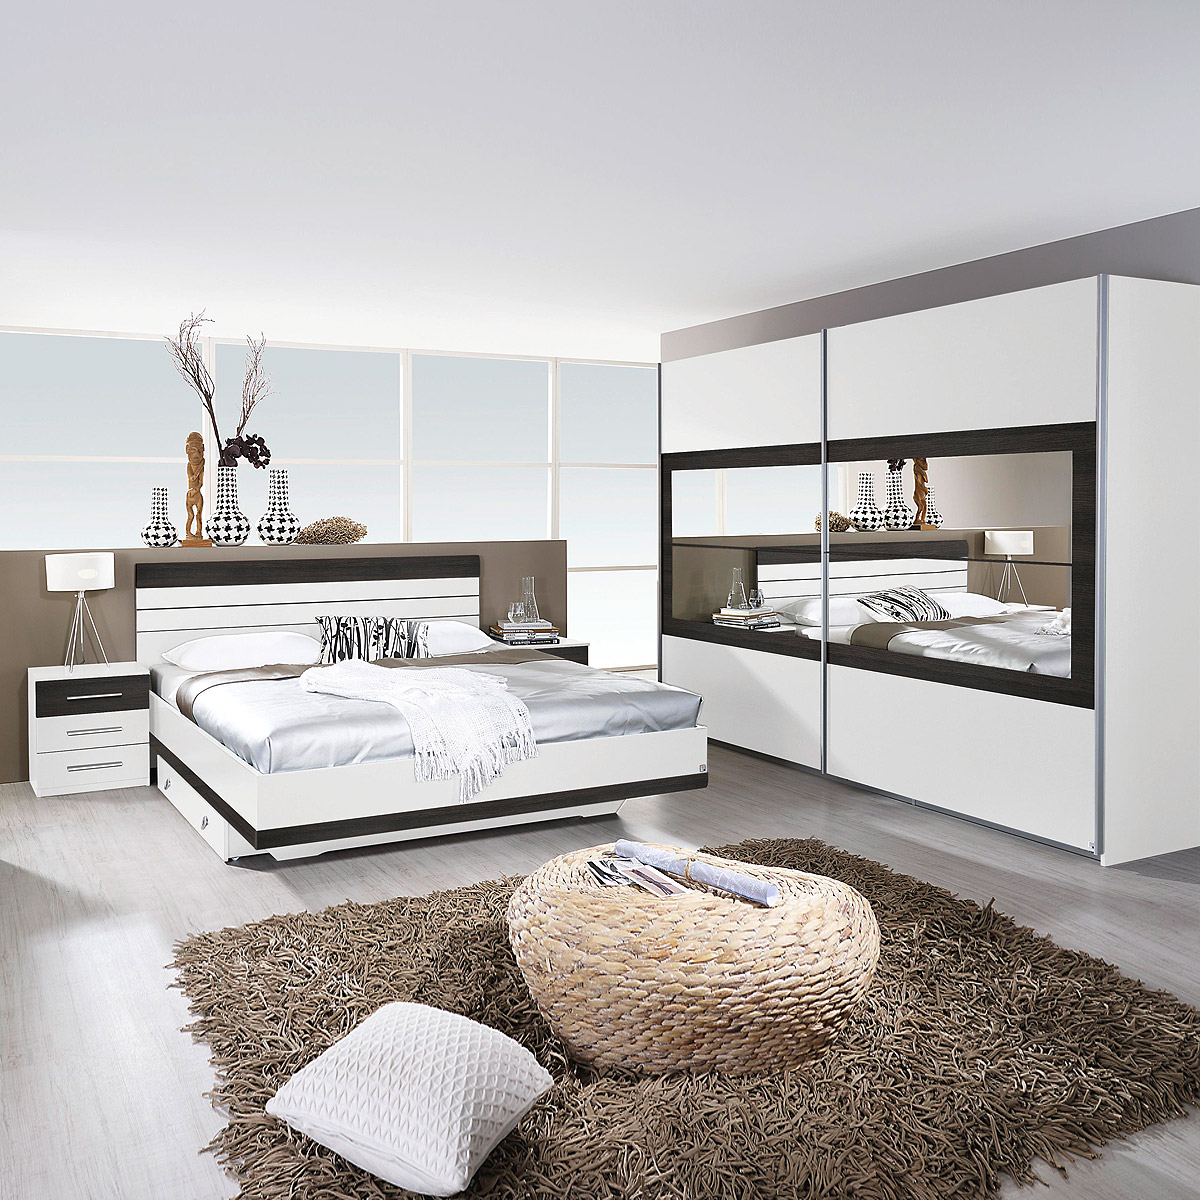 schlafzimmer set tarragona bett nakos kleiderschrank wei. Black Bedroom Furniture Sets. Home Design Ideas